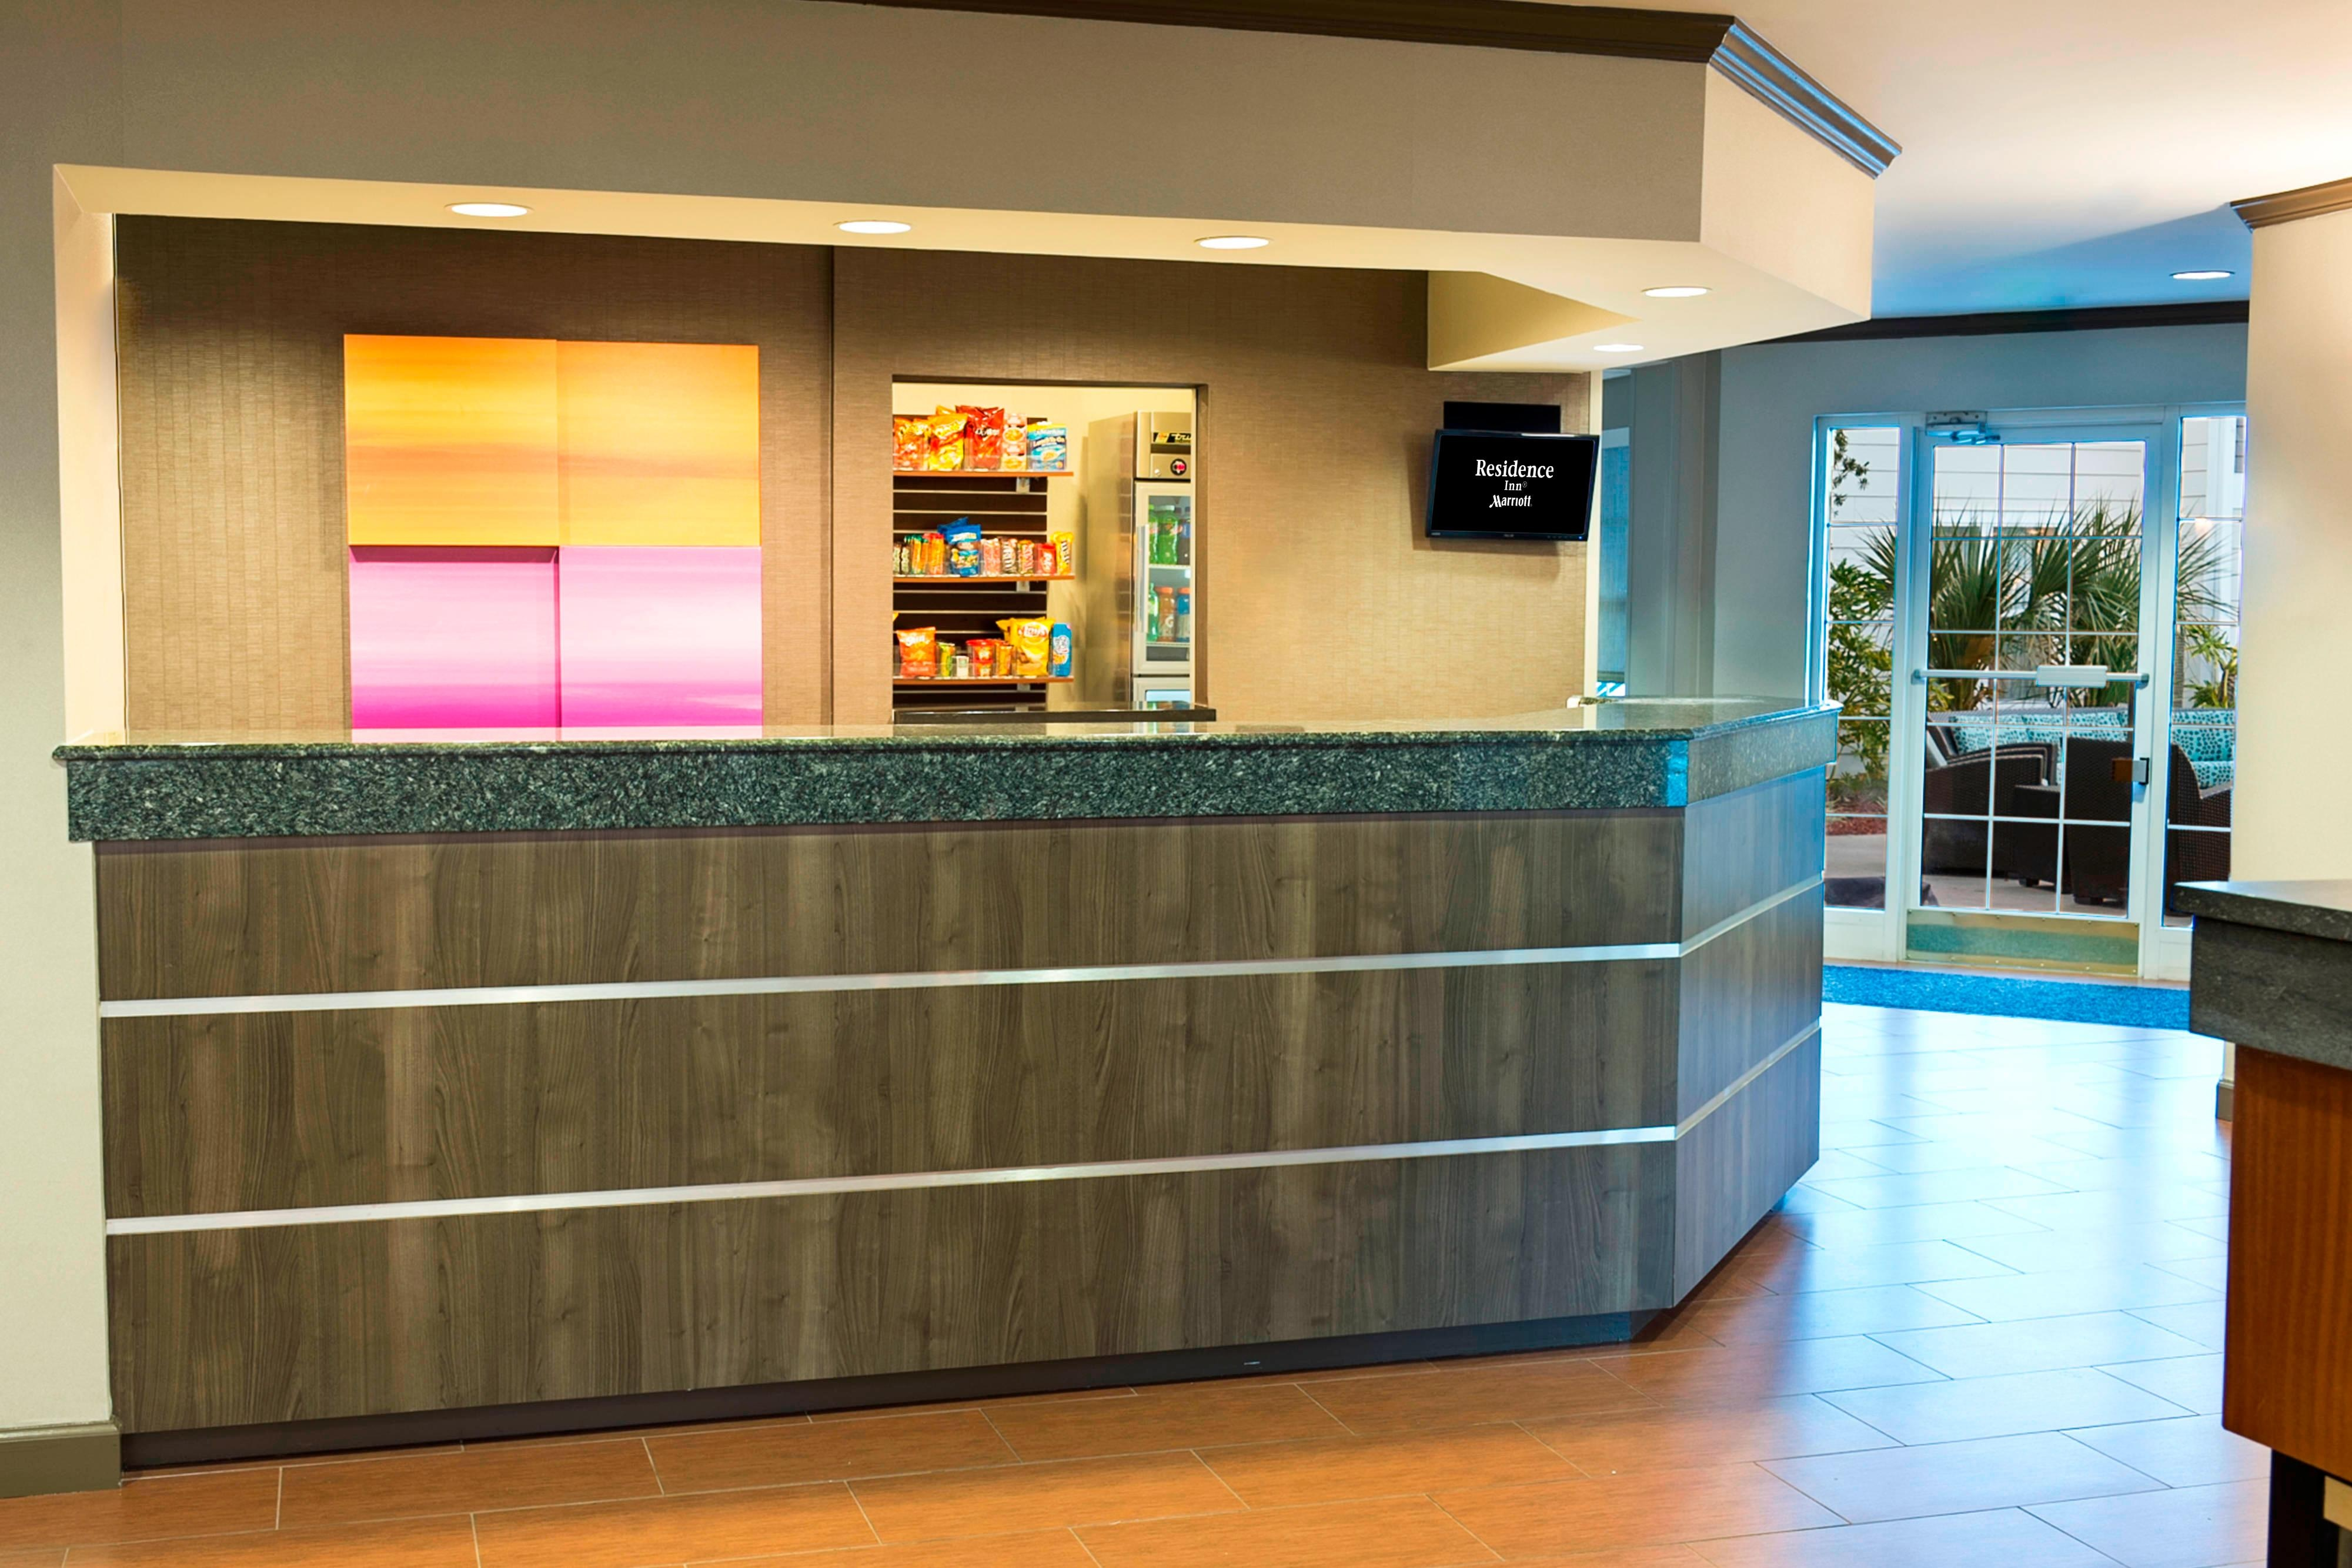 Residence Inn Lakeland welcome